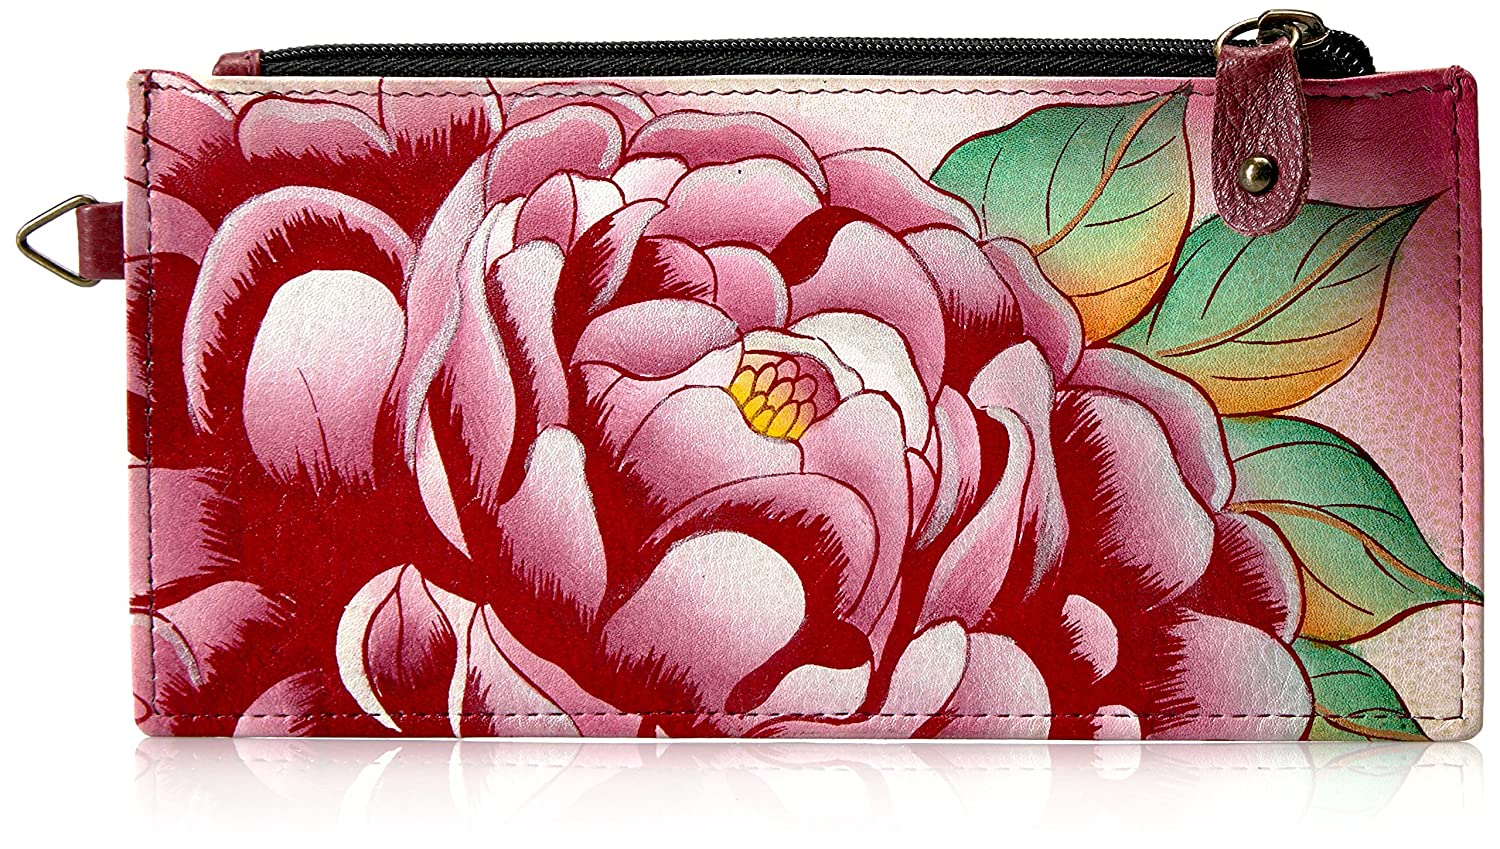 Anuschka Anna By Handpainted Leather Organizer Wallet, Precious Peony Credit Card Anna By Anuschka Ppy-Precious Peony One Size 1713-PPY